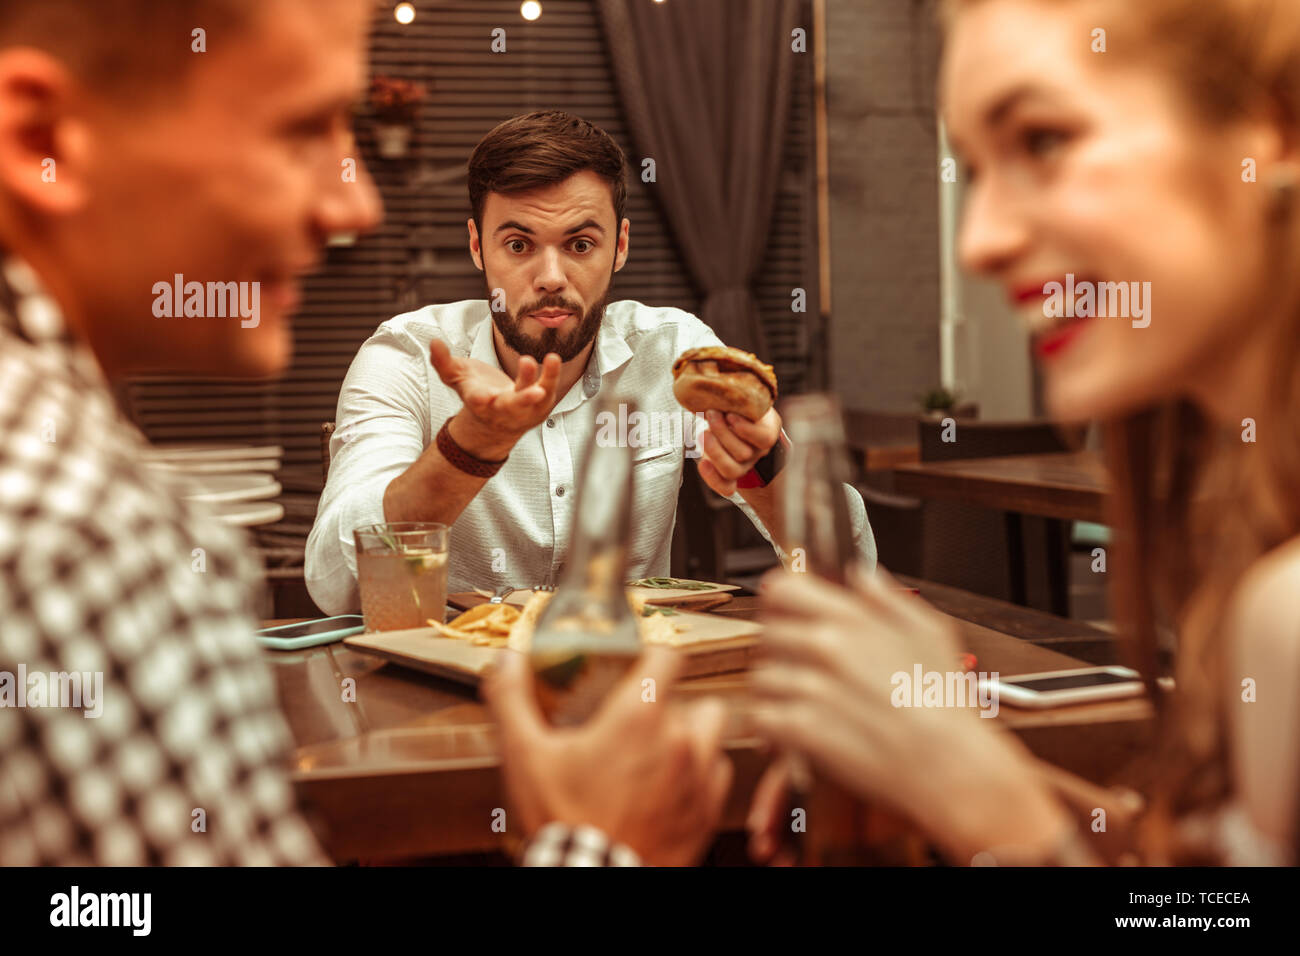 Showing dissatisfaction. Handsome dark-haired appealing young-adult male holding a burger and showing dissatisfaction with his flirting friends - Stock Image